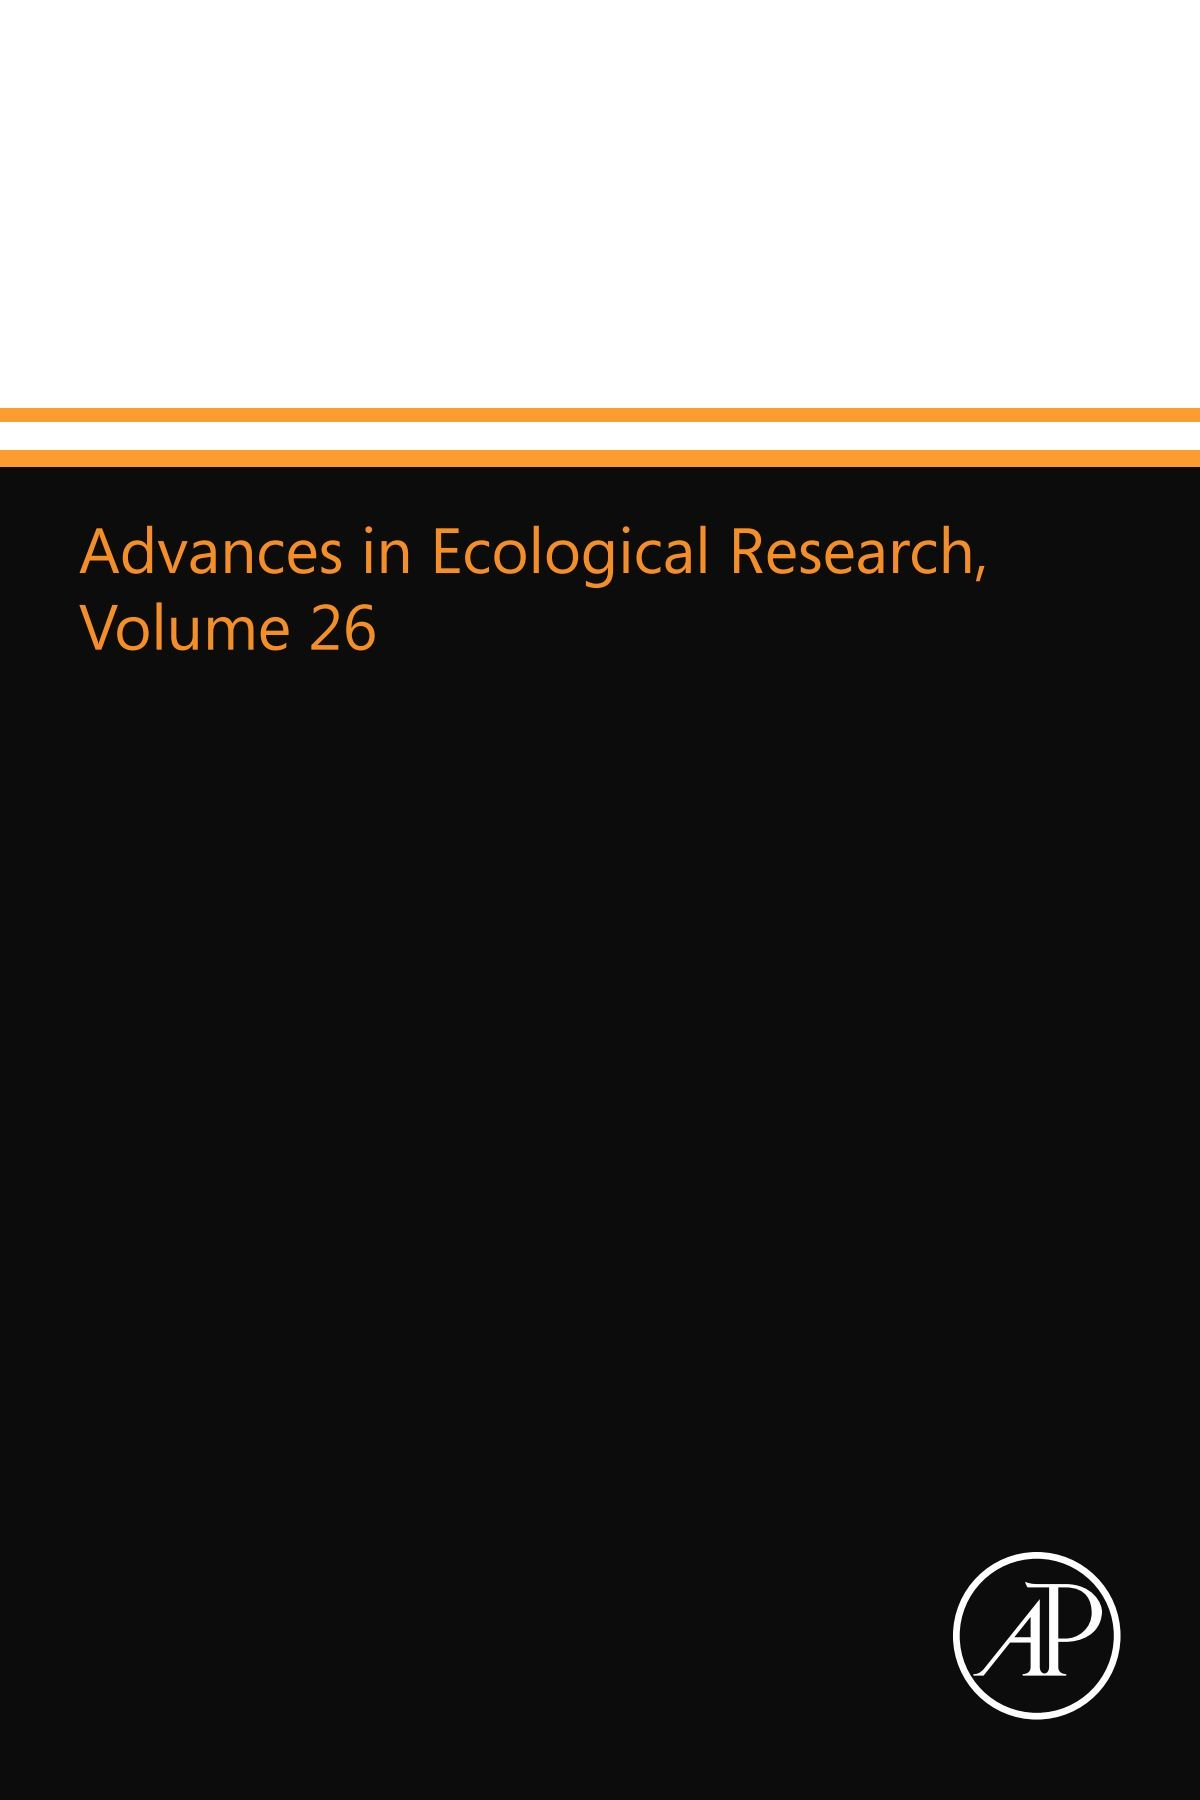 Advances in Ecological Research, Volume 26: Volume 26 pdf